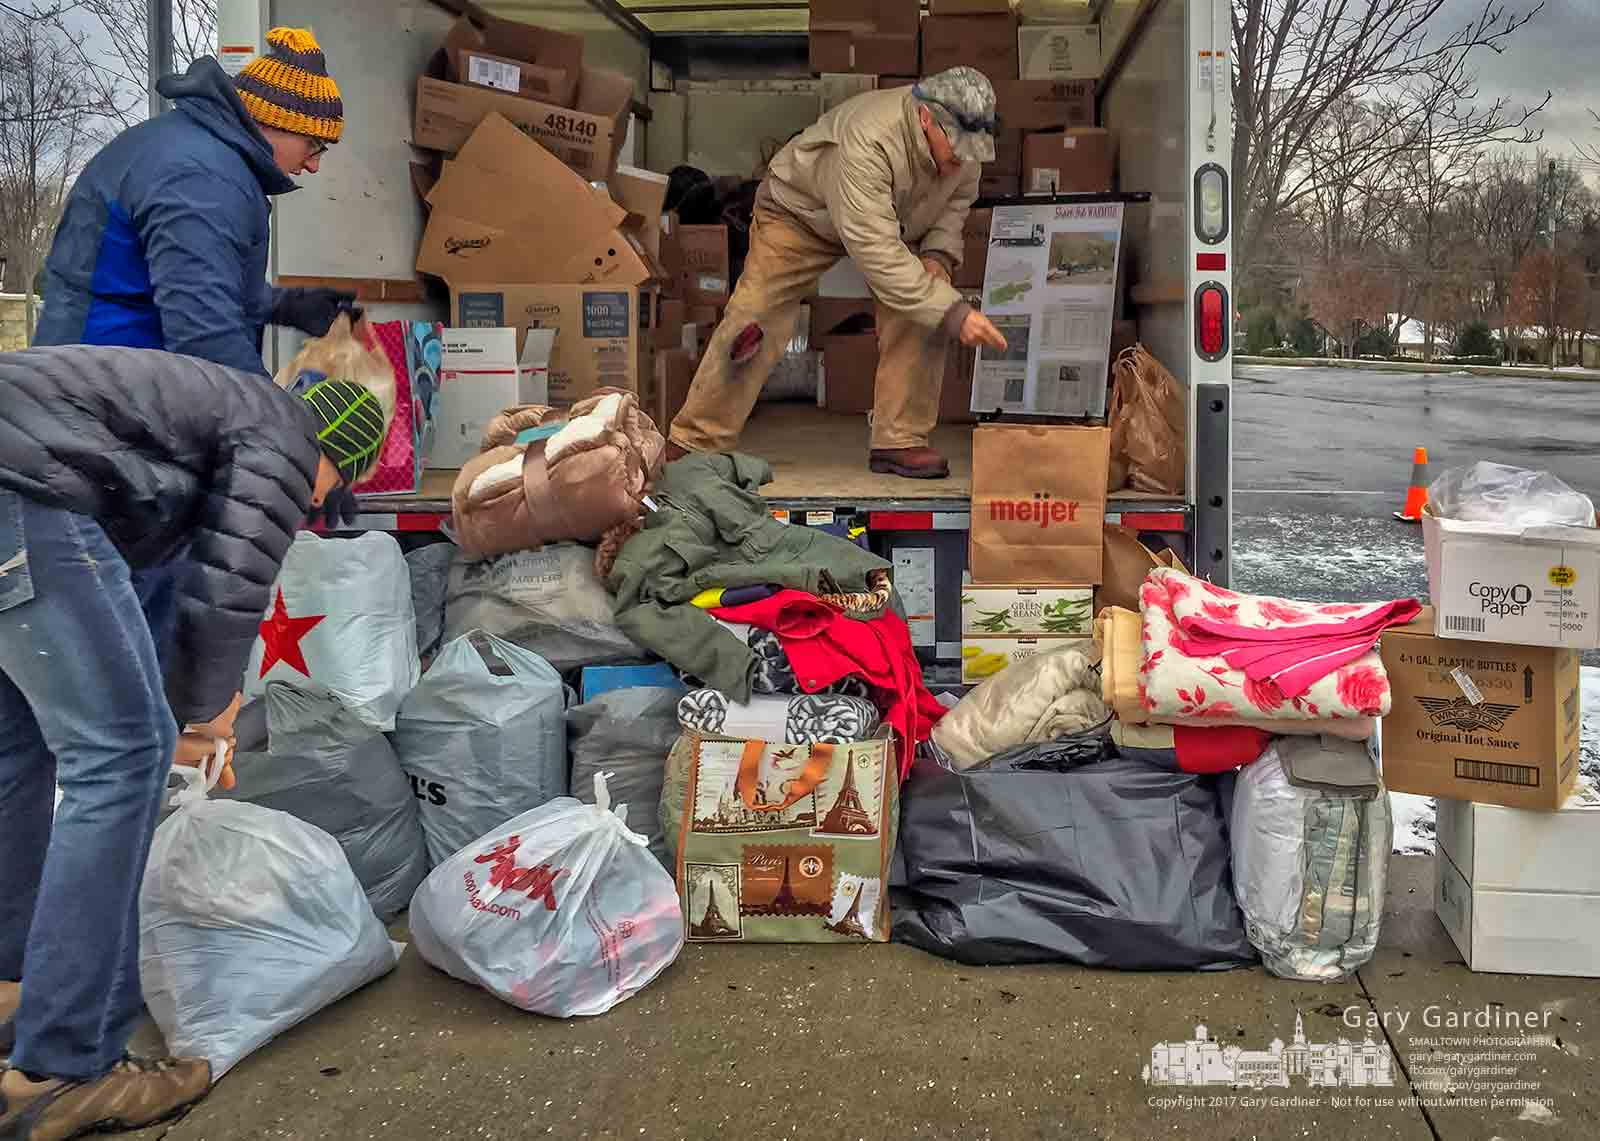 On a frigid winter morning volunteers gather coats and blankets donated to the St. Vincent dePaul Society at St. Paul Catholic Church Sunday morning. My Final Photo for Dec. 10, 2017.